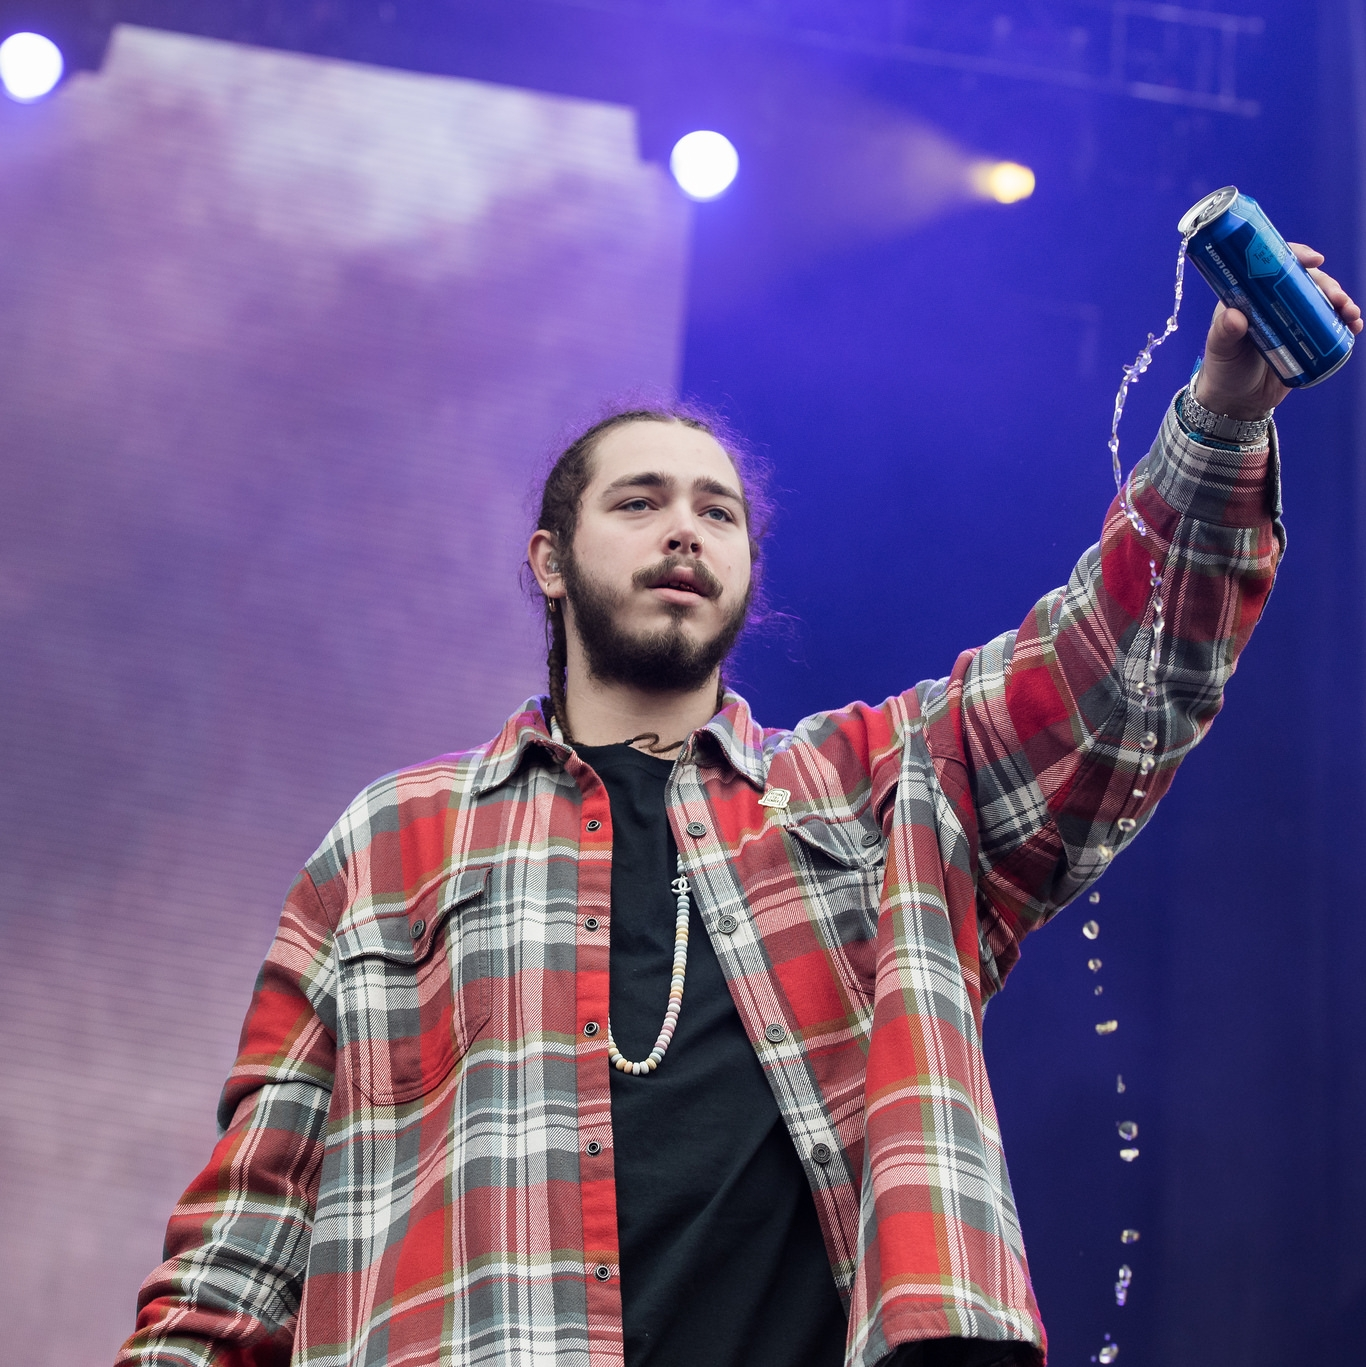 Credit: Flickr user DeShaun Craddock  (Watch the video to understand where Posty comes into this)